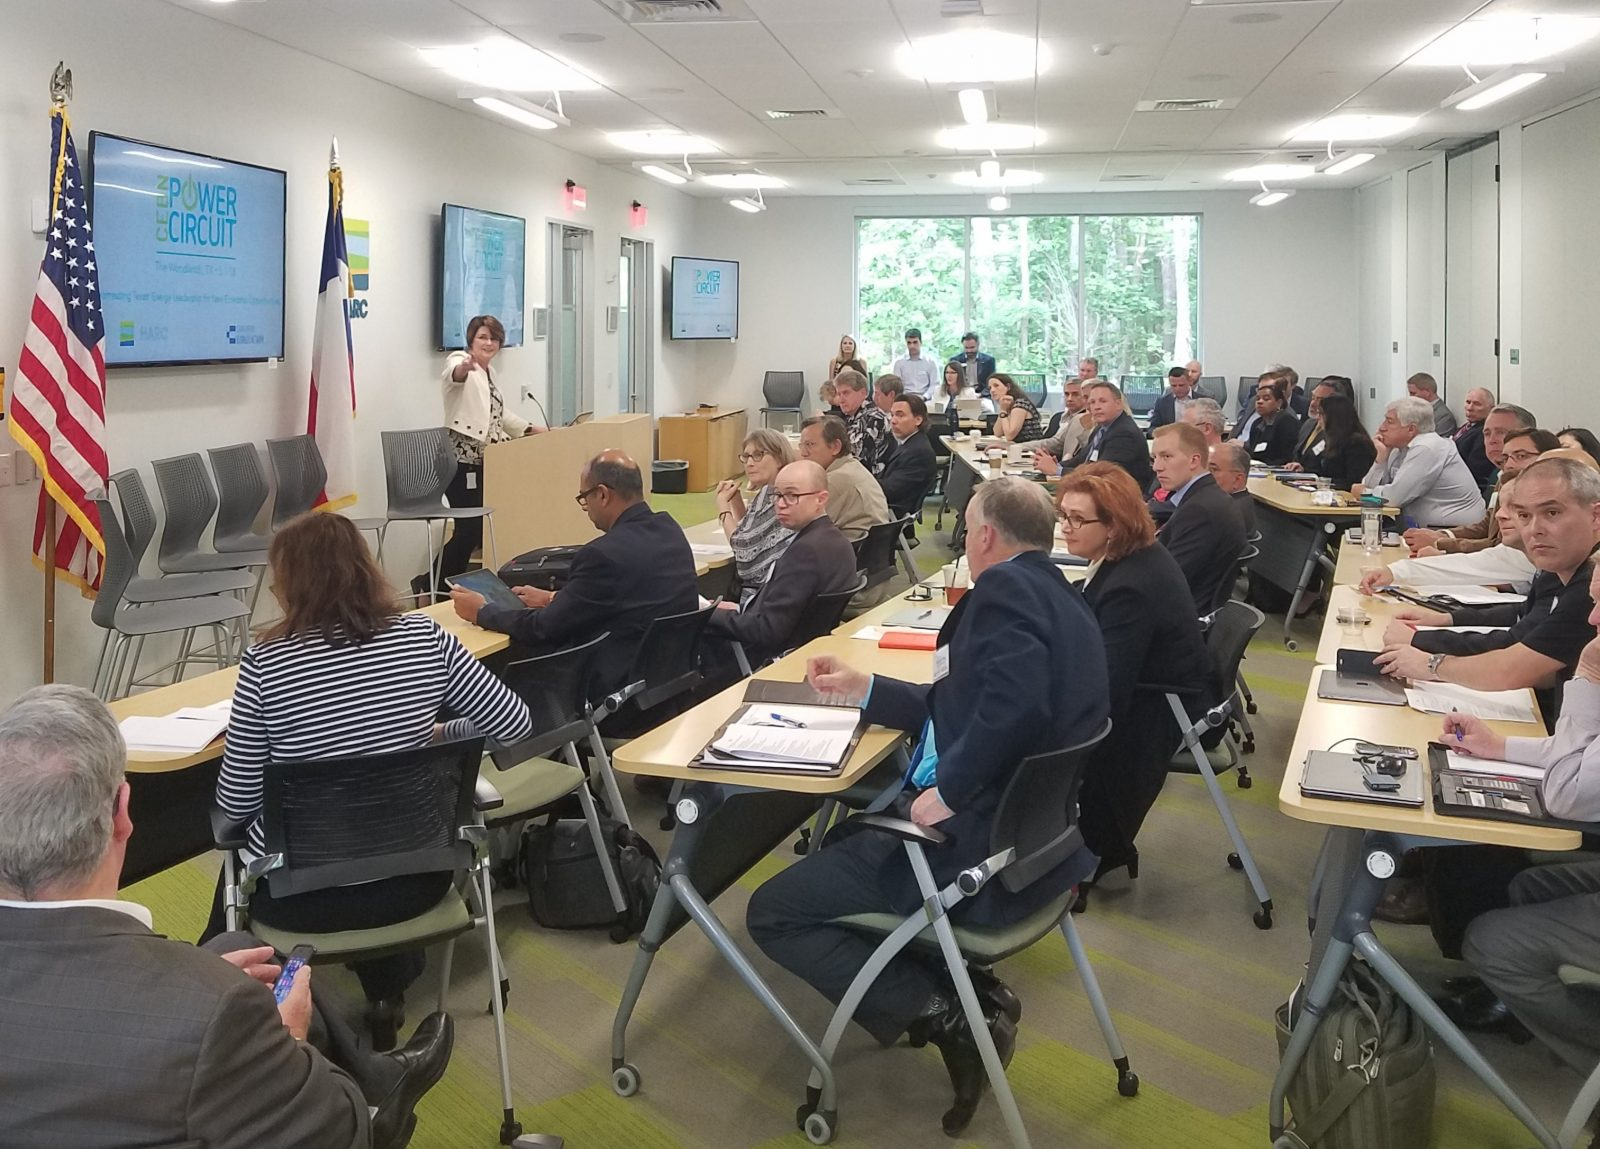 HARC President Lisa Gonzalez kicks off the discussion at the CEBN/HARC clean energy policy and business forum on May 1, 2018.